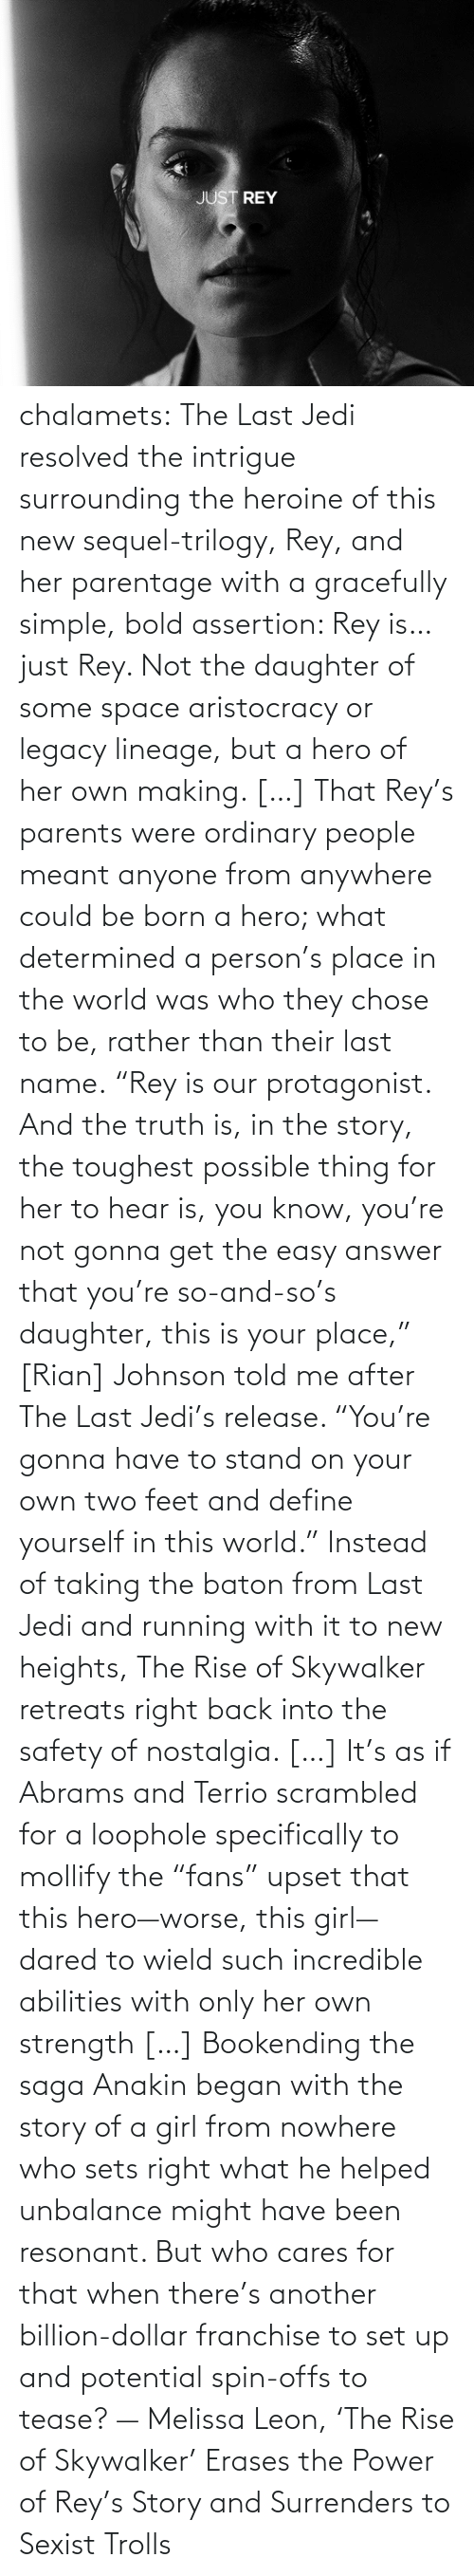 "person: chalamets:  The Last Jedi resolved the intrigue surrounding the heroine of this new sequel-trilogy, Rey, and her parentage with a gracefully simple, bold assertion: Rey is… just Rey. Not the daughter of some space aristocracy or legacy lineage, but a hero of her own making. […] That Rey's parents were ordinary people meant anyone from anywhere could be born a hero; what determined a person's place in the world was who they chose to be, rather than their last name. ""Rey is our protagonist. And the truth is, in the story, the toughest possible thing for her to hear is, you know, you're not gonna get the easy answer that you're so-and-so's daughter, this is your place,"" [Rian] Johnson told me after The Last Jedi's release. ""You're gonna have to stand on your own two feet and define yourself in this world."" Instead of taking the baton from Last Jedi and running with it to new heights, The Rise of Skywalker retreats right back into the safety of nostalgia. […] It's as if Abrams and Terrio scrambled for a loophole specifically to mollify the ""fans"" upset that this hero—worse, this girl—dared to wield such incredible abilities with only her own strength […] Bookending the saga Anakin began with the story of a girl from nowhere who sets right what he helped unbalance might have been resonant. But who cares for that when there's another billion-dollar franchise to set up and potential spin-offs to tease? — Melissa Leon, 'The Rise of Skywalker' Erases the Power of Rey's Story and Surrenders to Sexist Trolls"